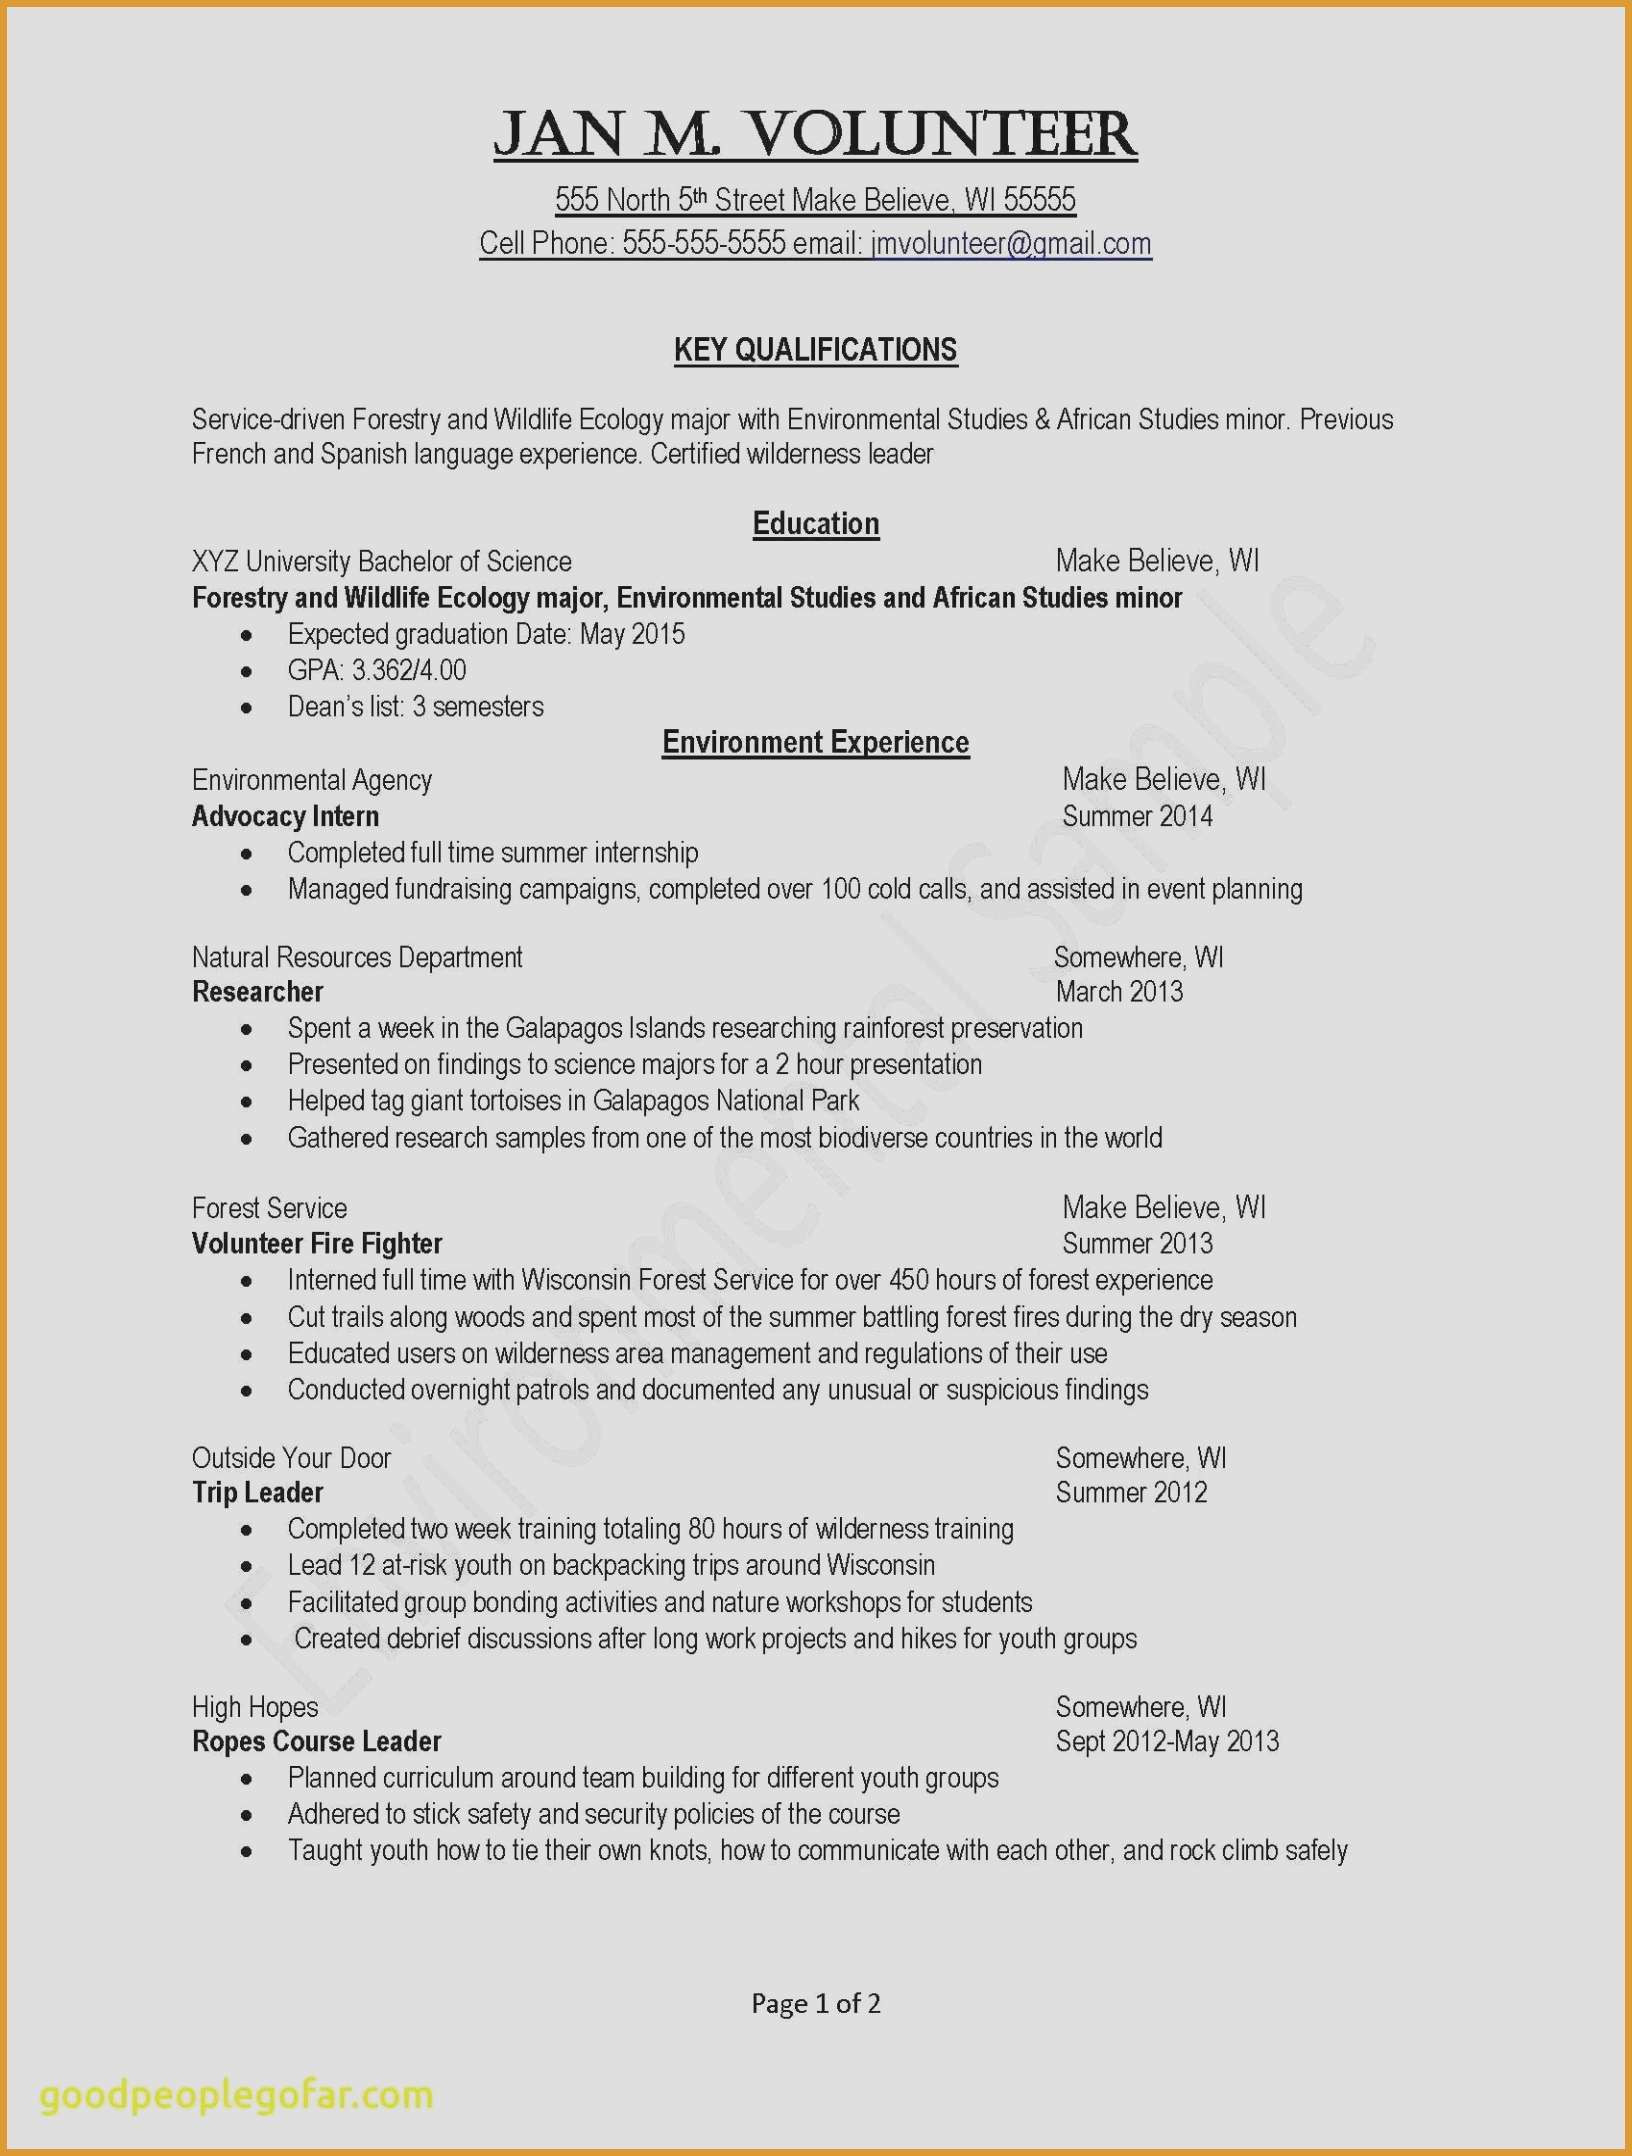 Resume Help Near Me - Free Resume Help Near Me Breathtaking Help with A Resume Lovely